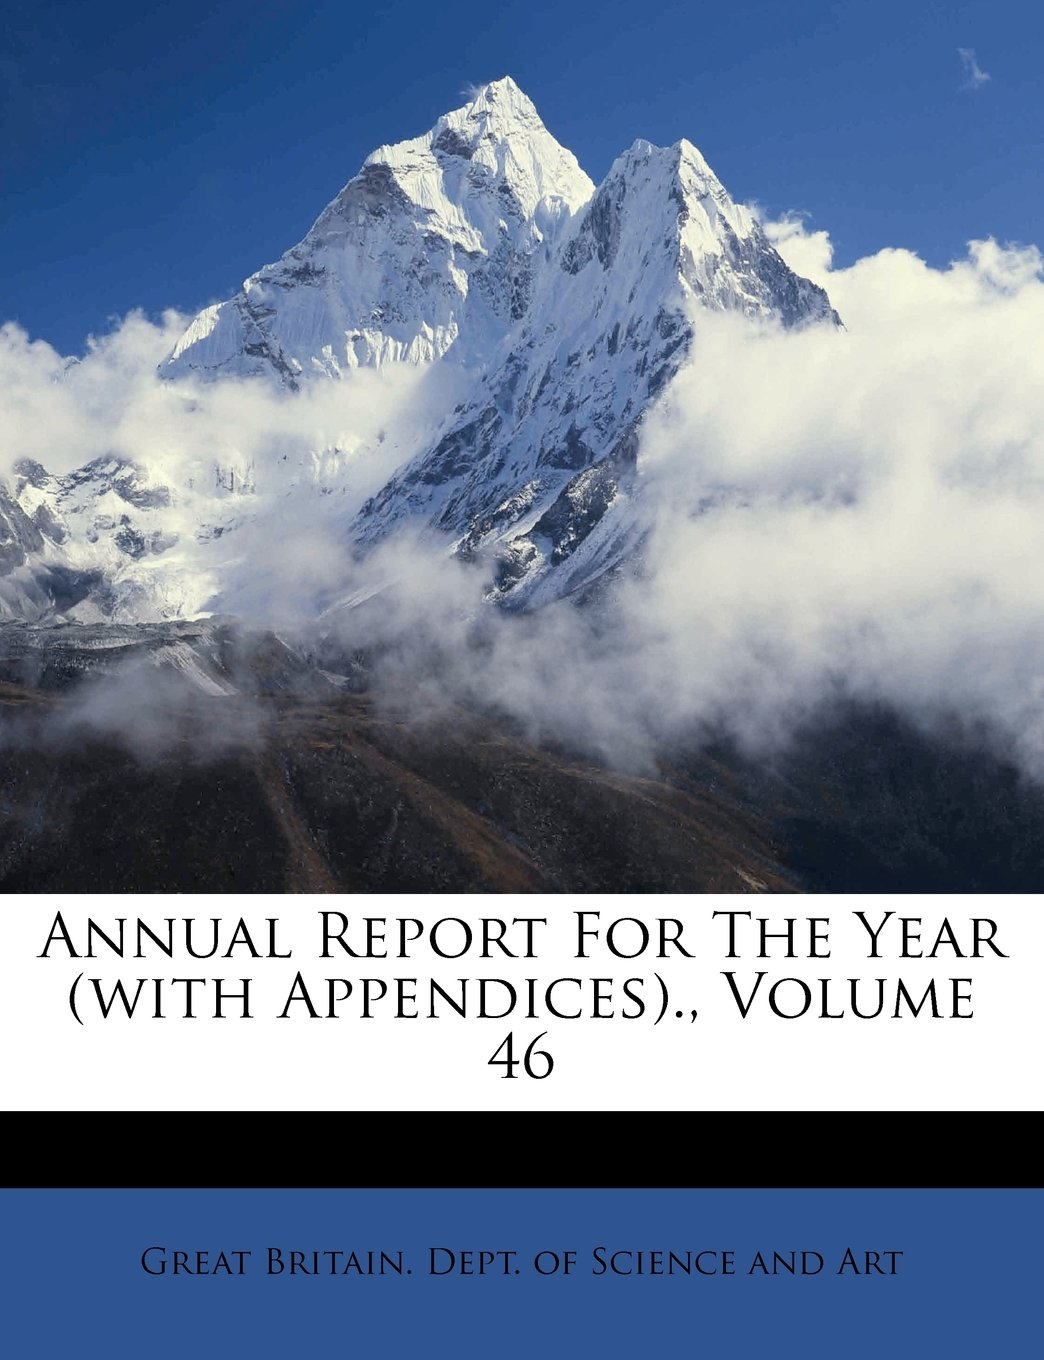 Annual Report For The Year (with Appendices)., Volume 46 (Afrikaans Edition) ebook